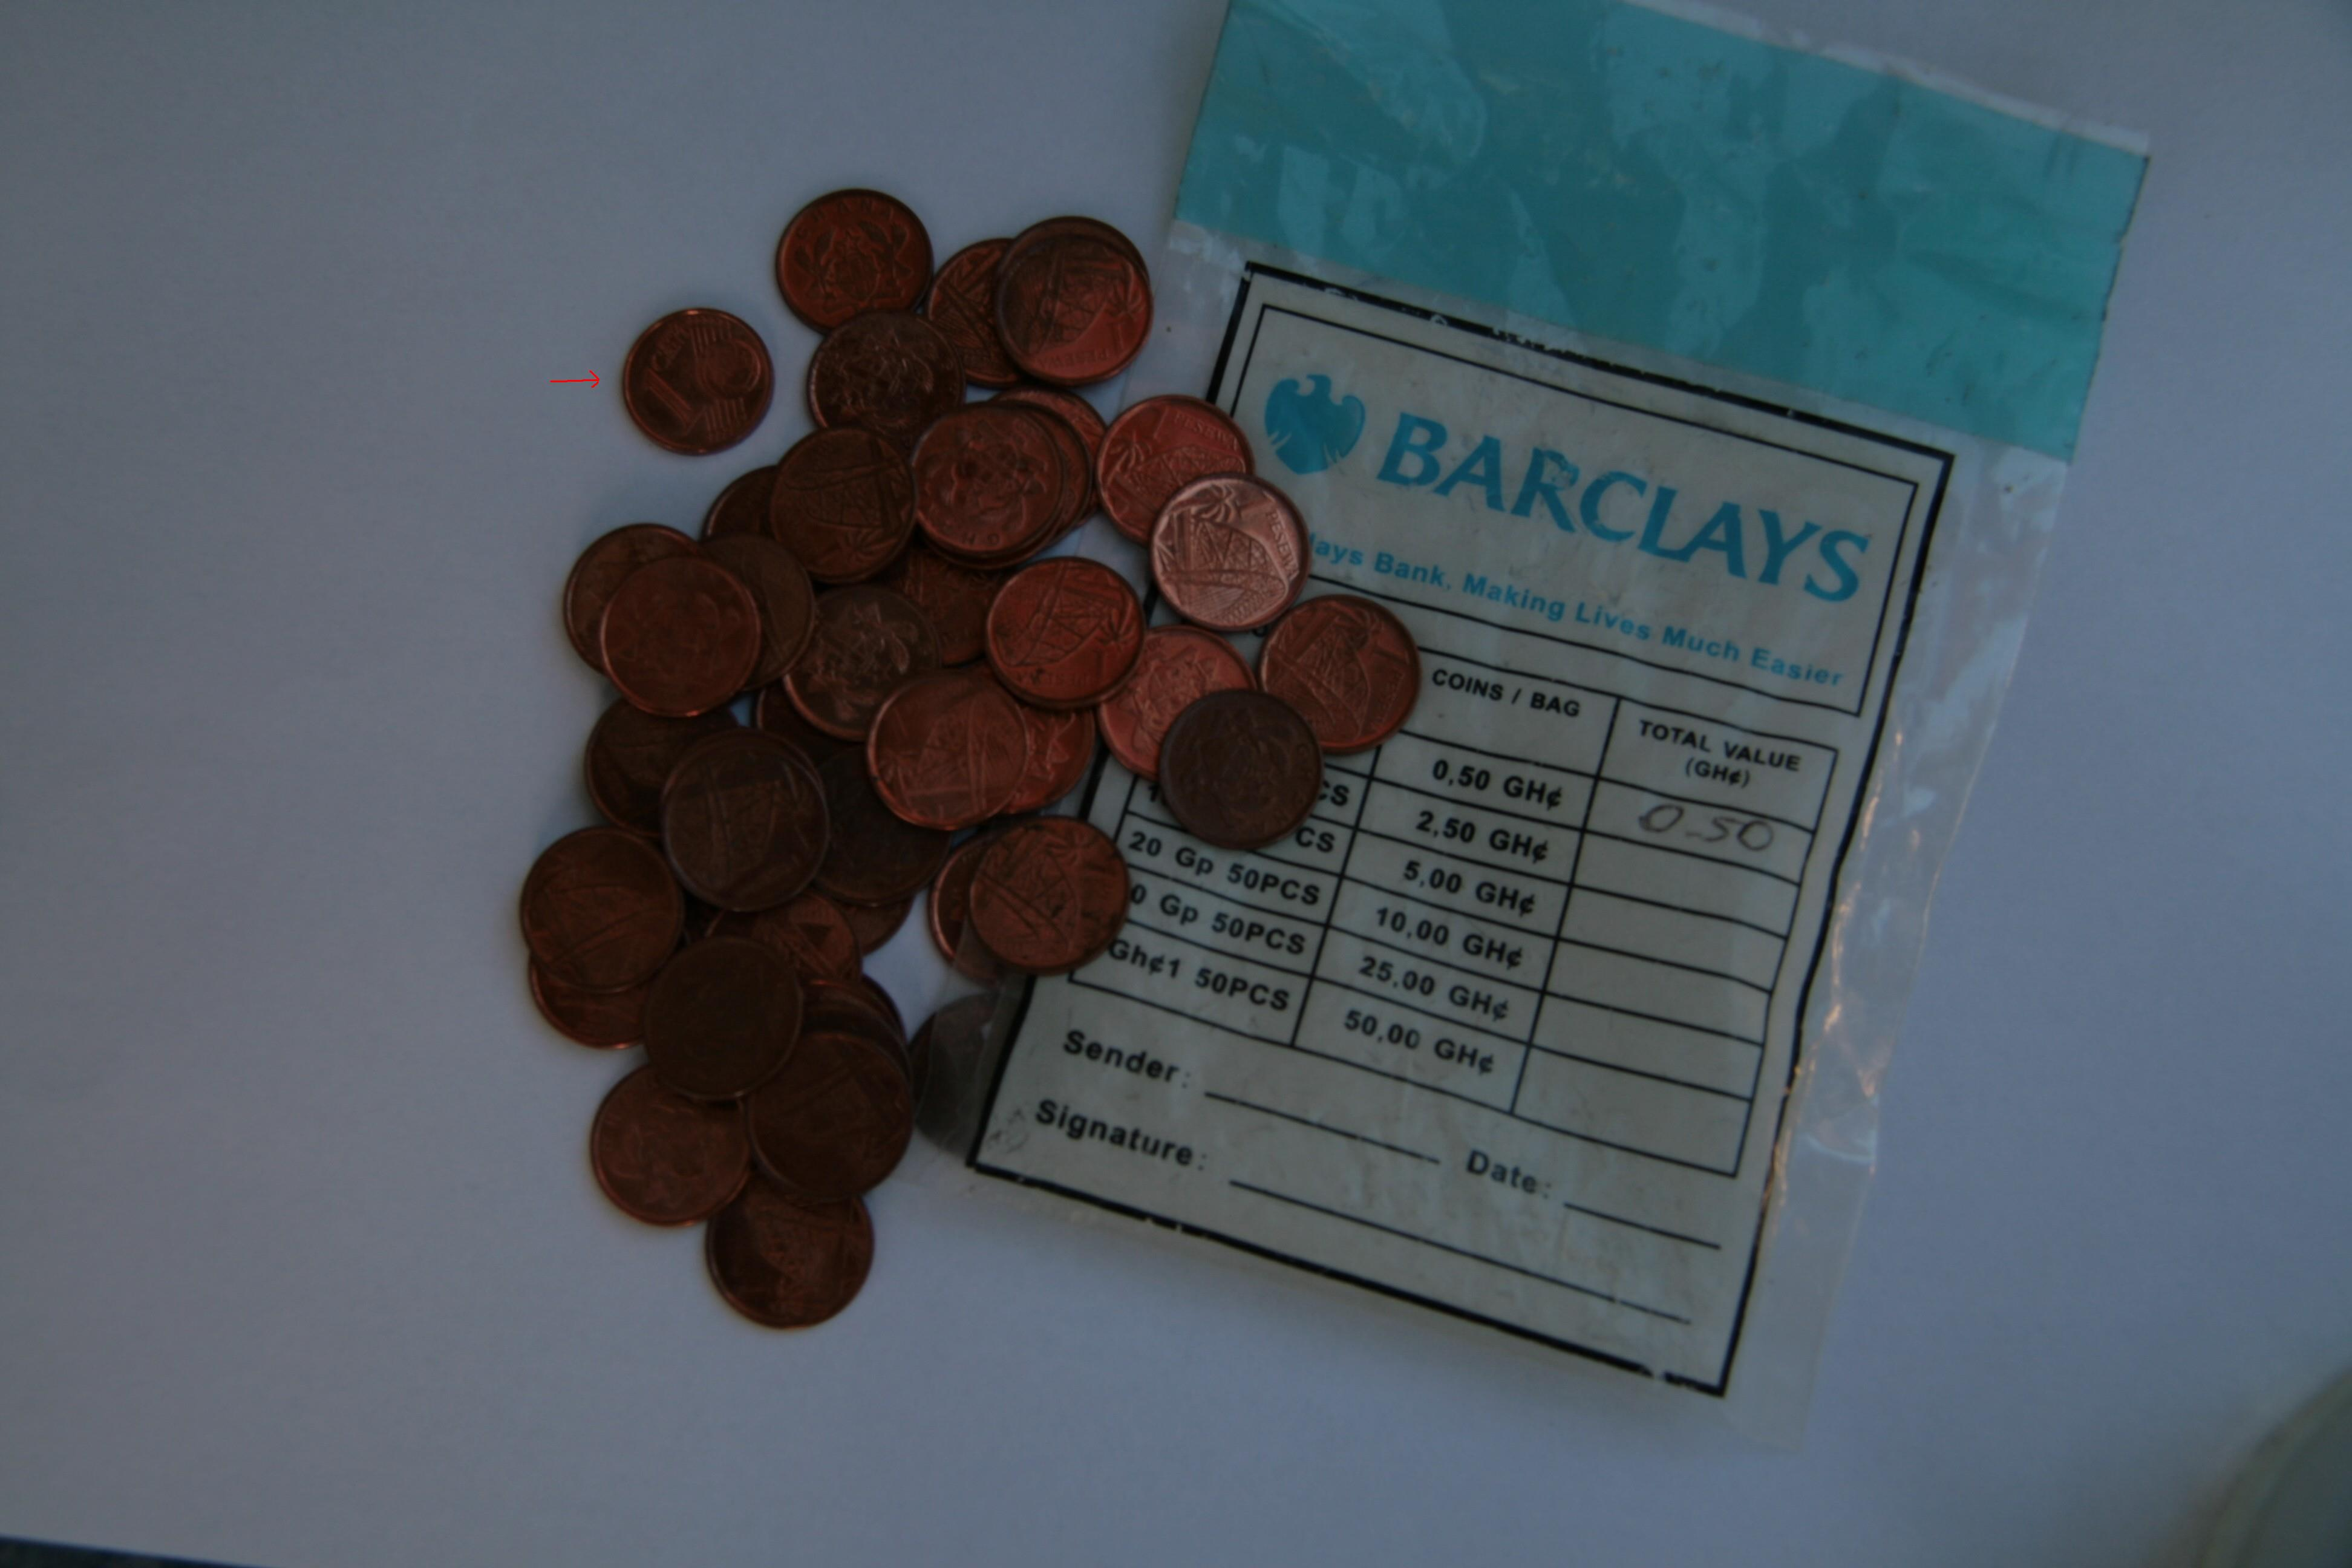 GH 2013-Barclays 1 ct.JPG